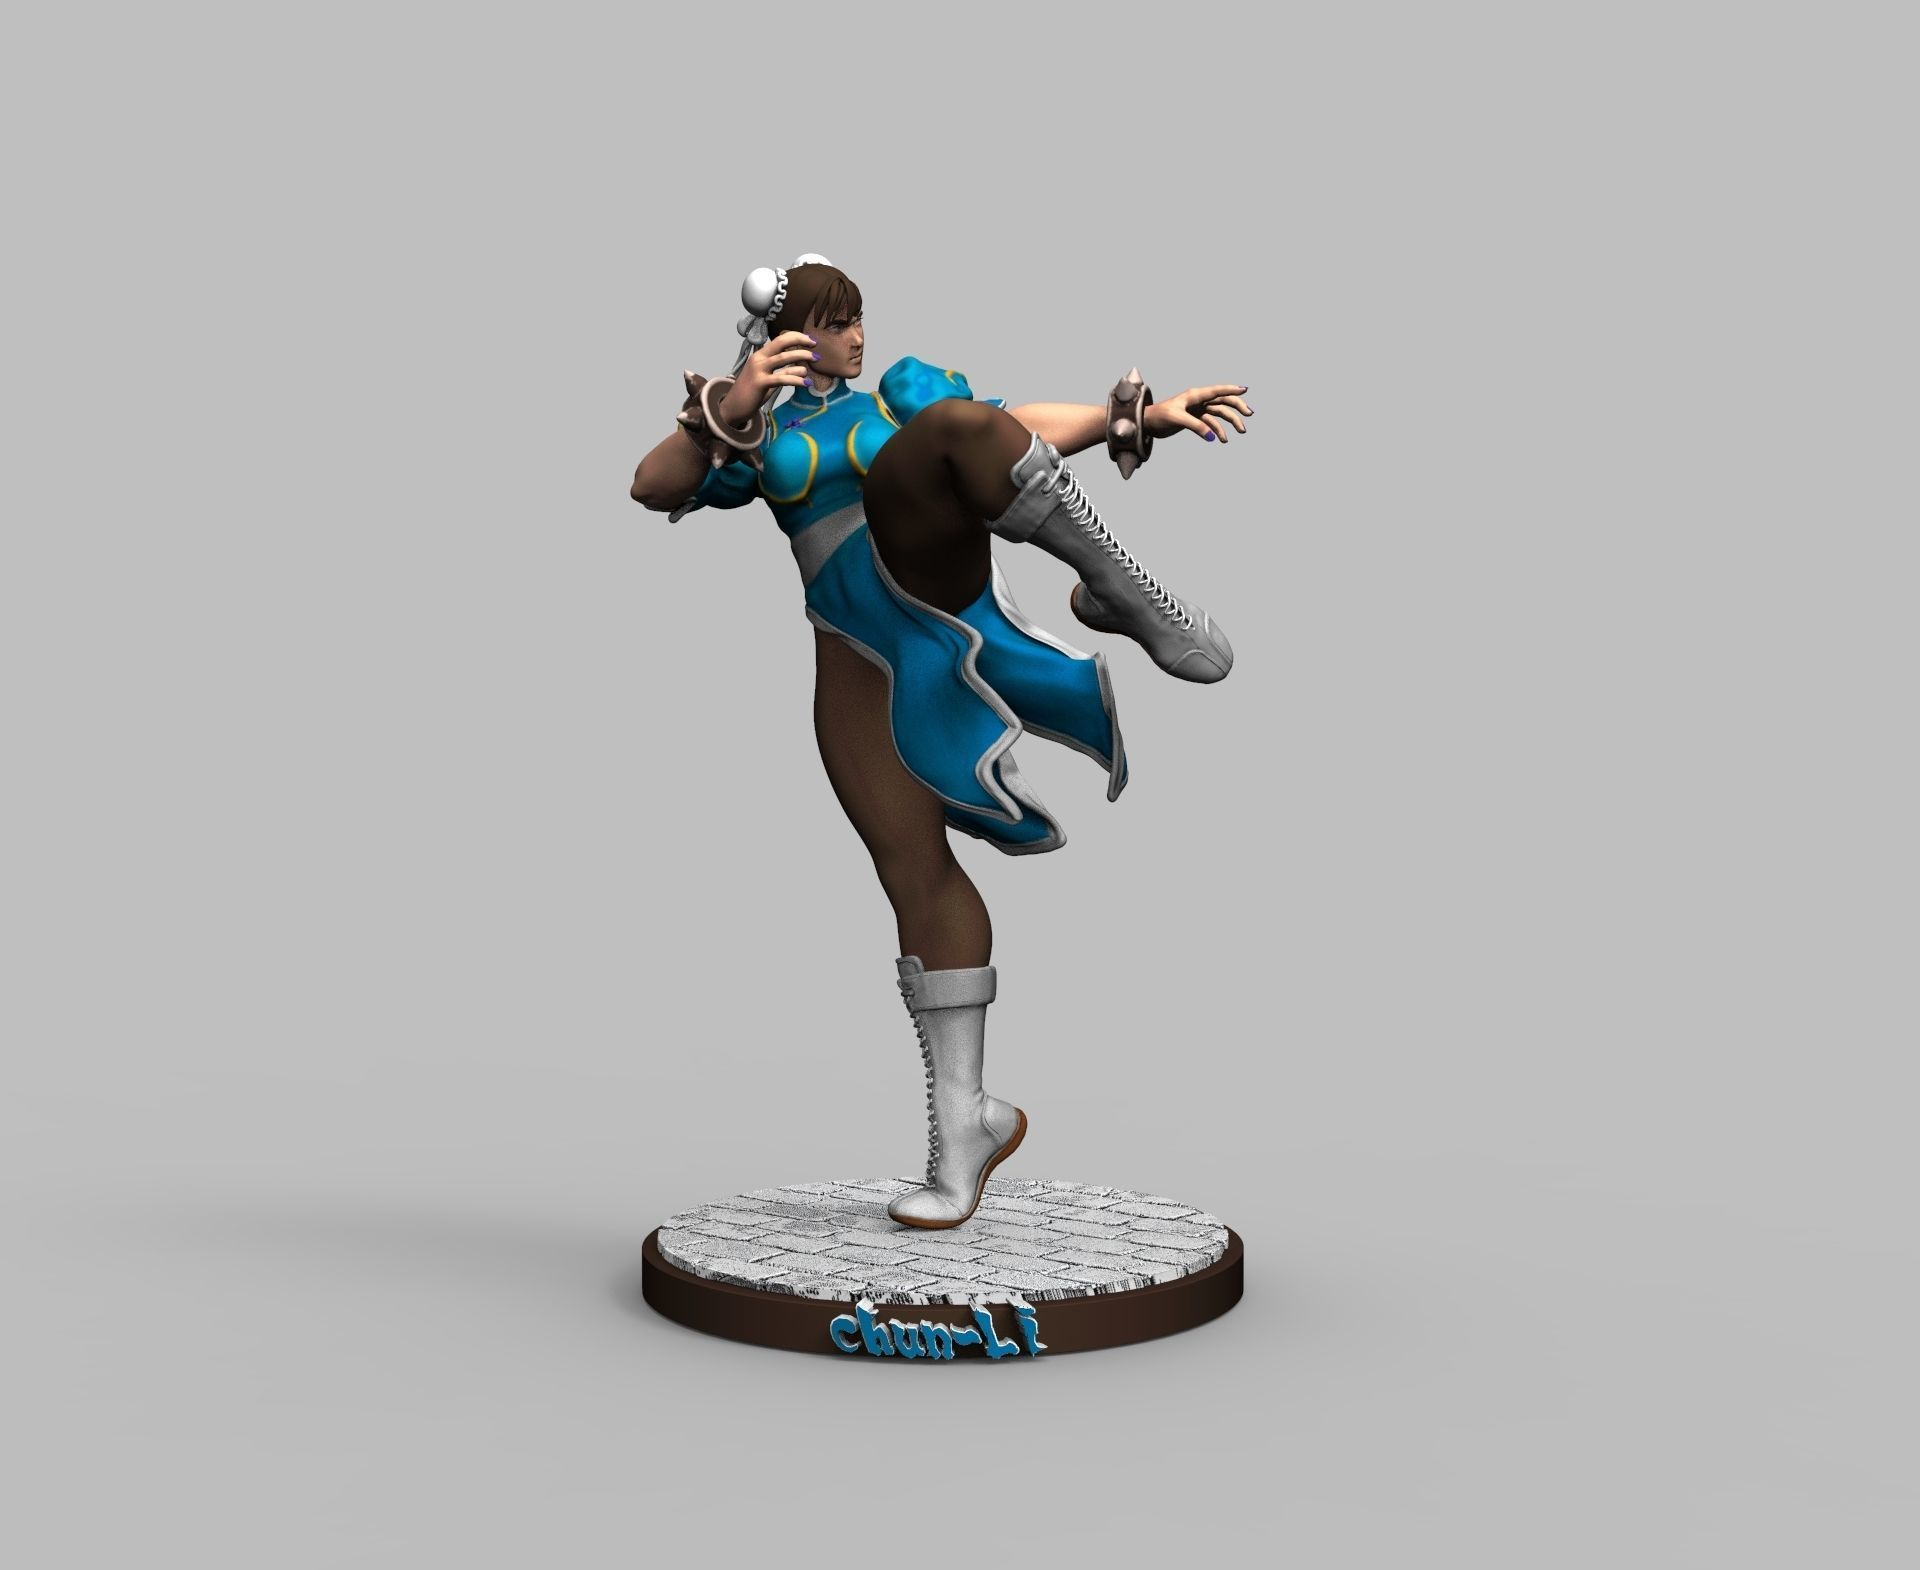 Street Fighter Chun Li 3d Printing Model Diorama 1